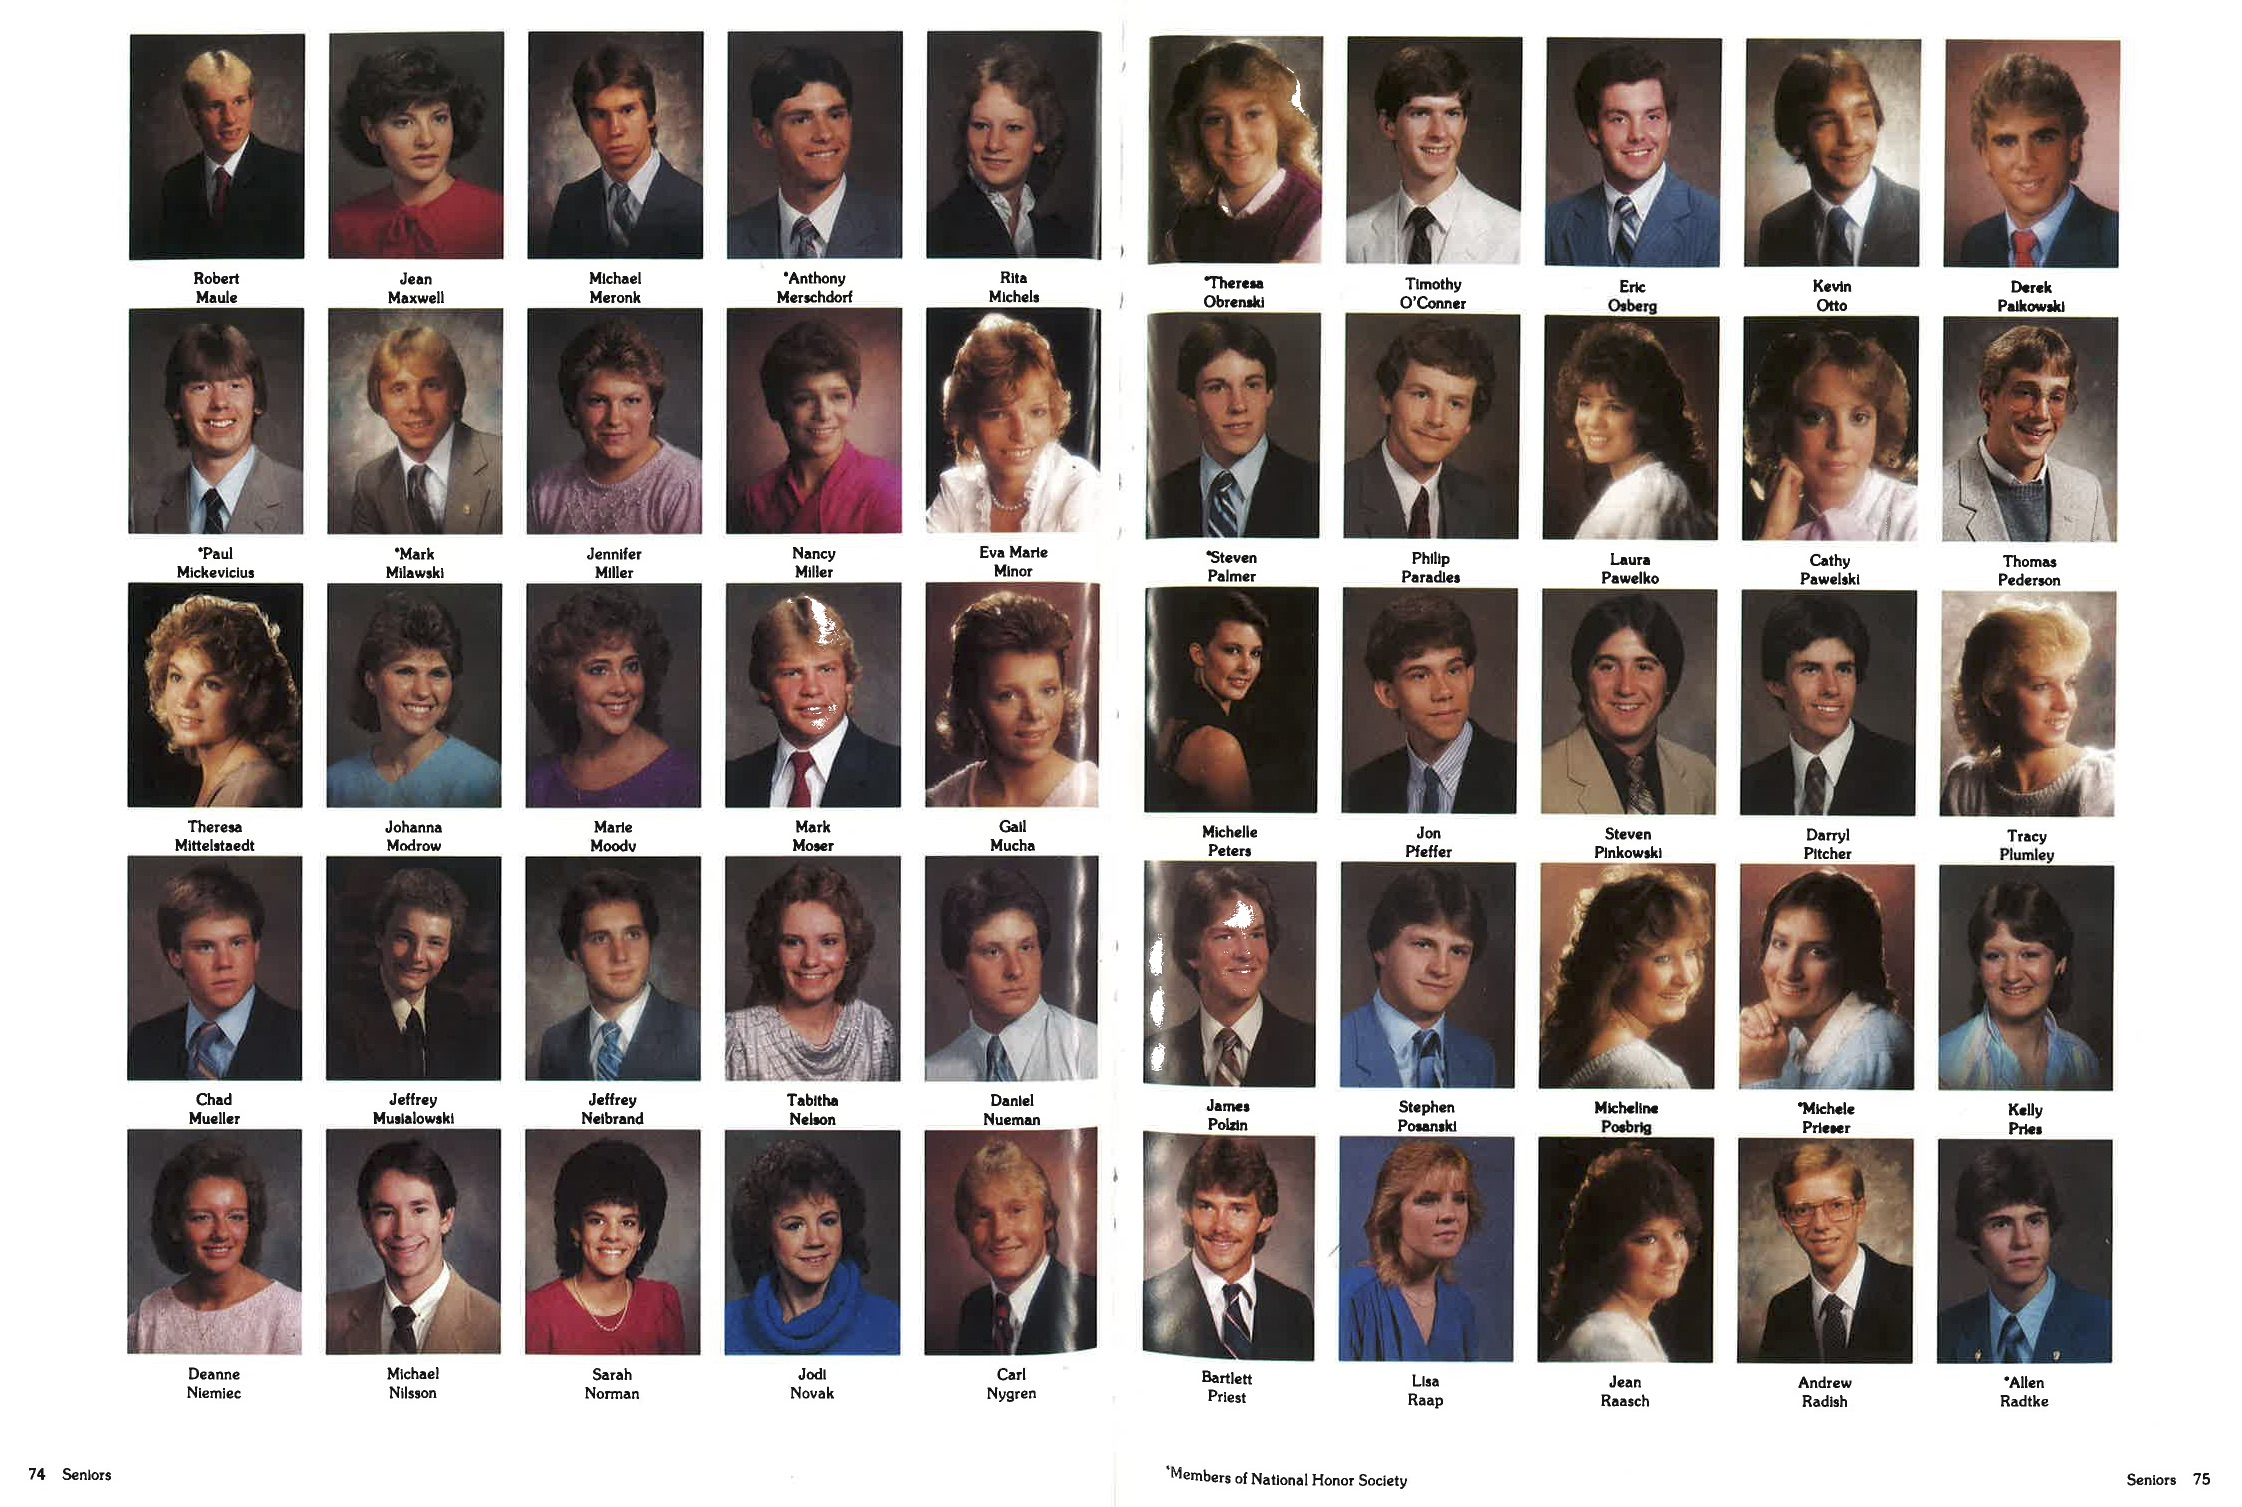 1985_Yearbook_34.jpg